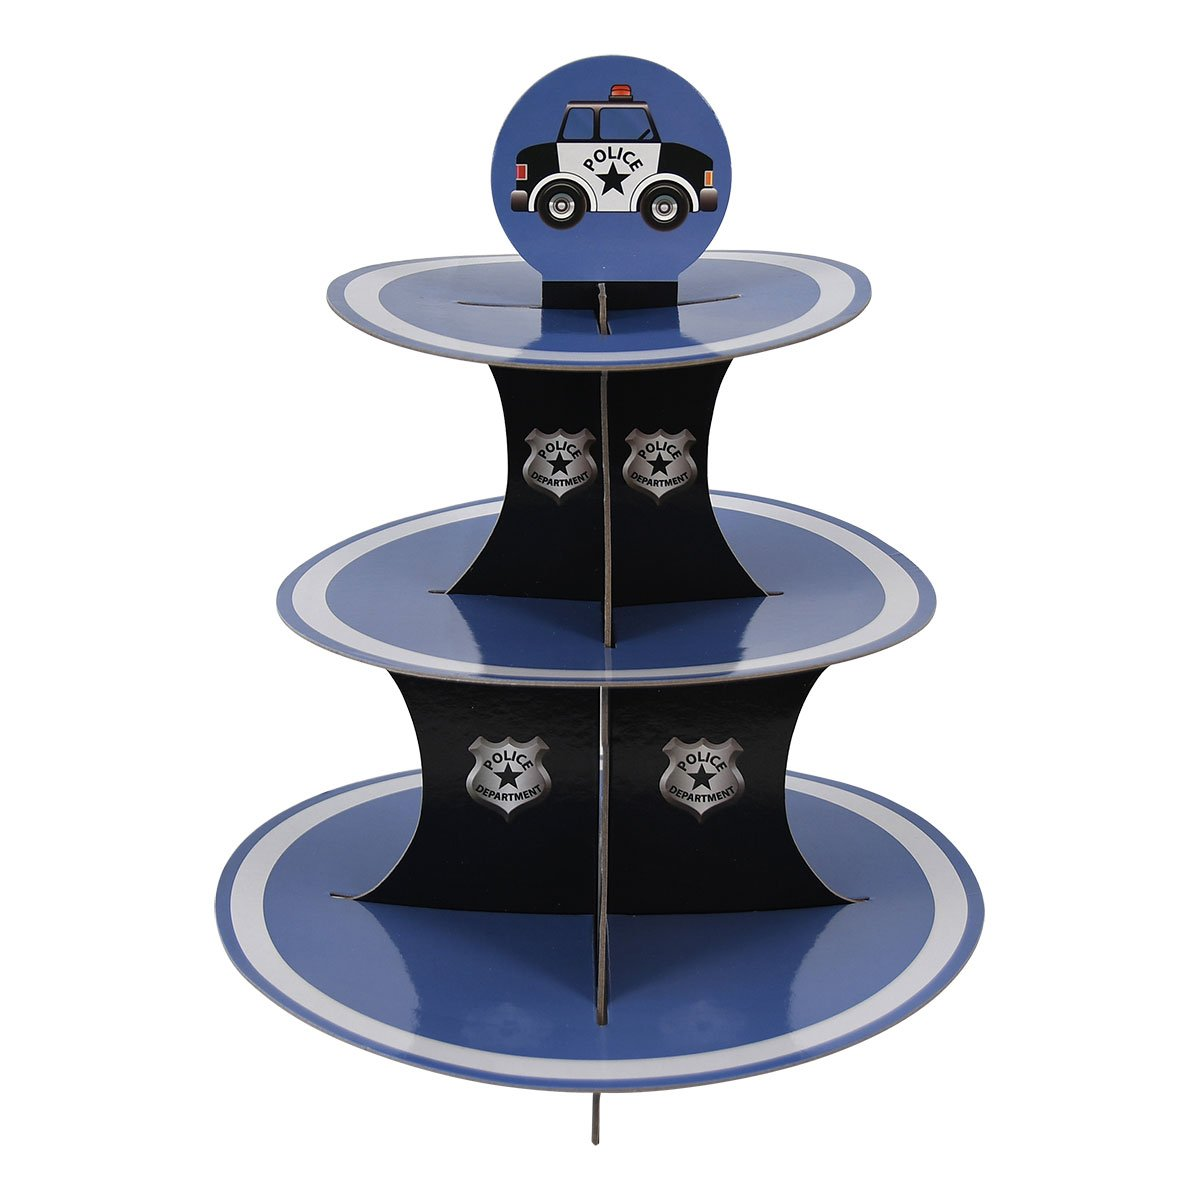 Police Party Cupcake Stand & Pick Kit, Police Party Supplies, Police Decorations, Birthdays, Cake Decorations